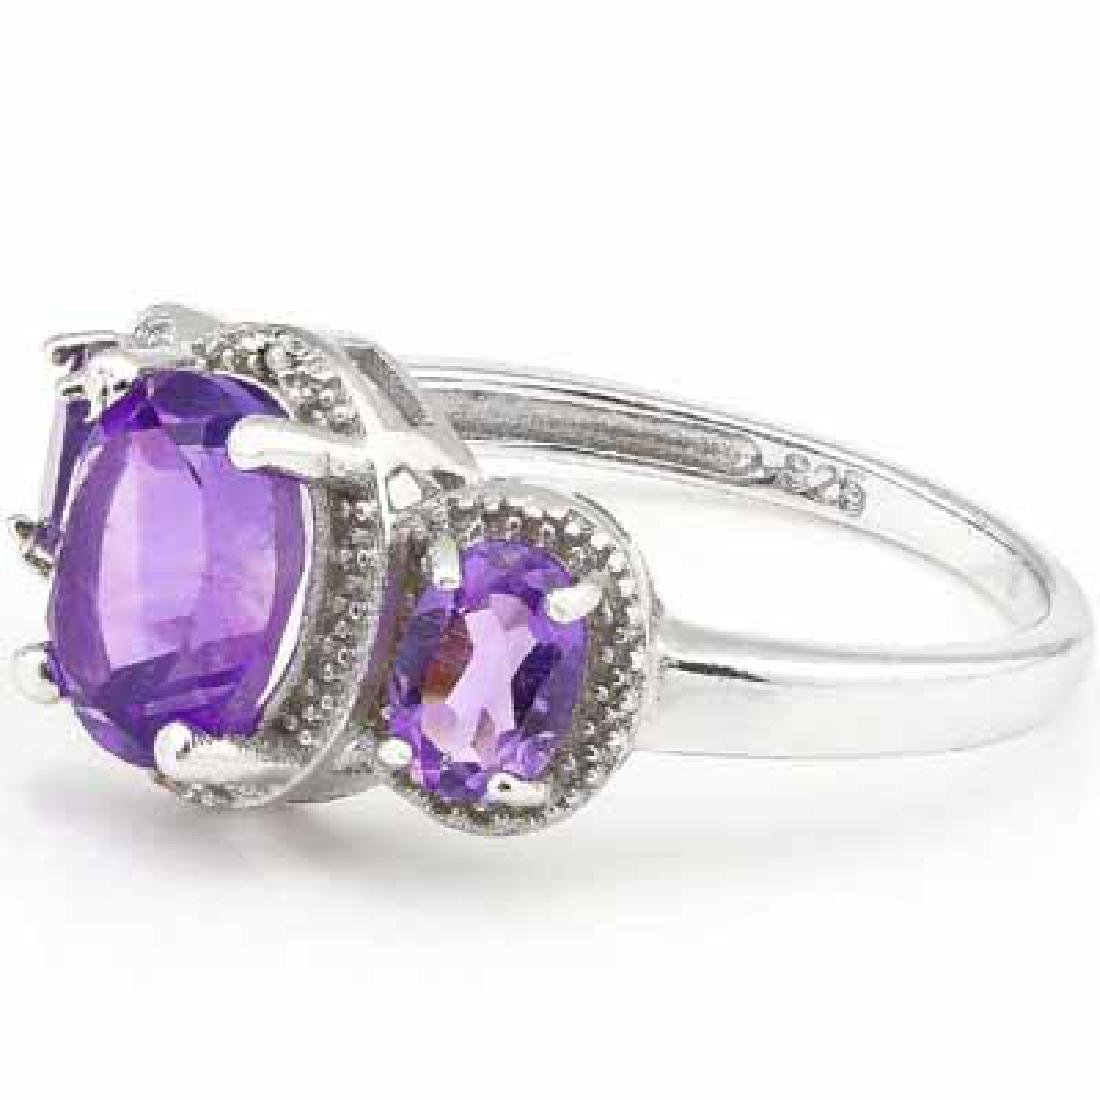 2.65 CT AMETHYSTS 925 STERLING SILVER RING